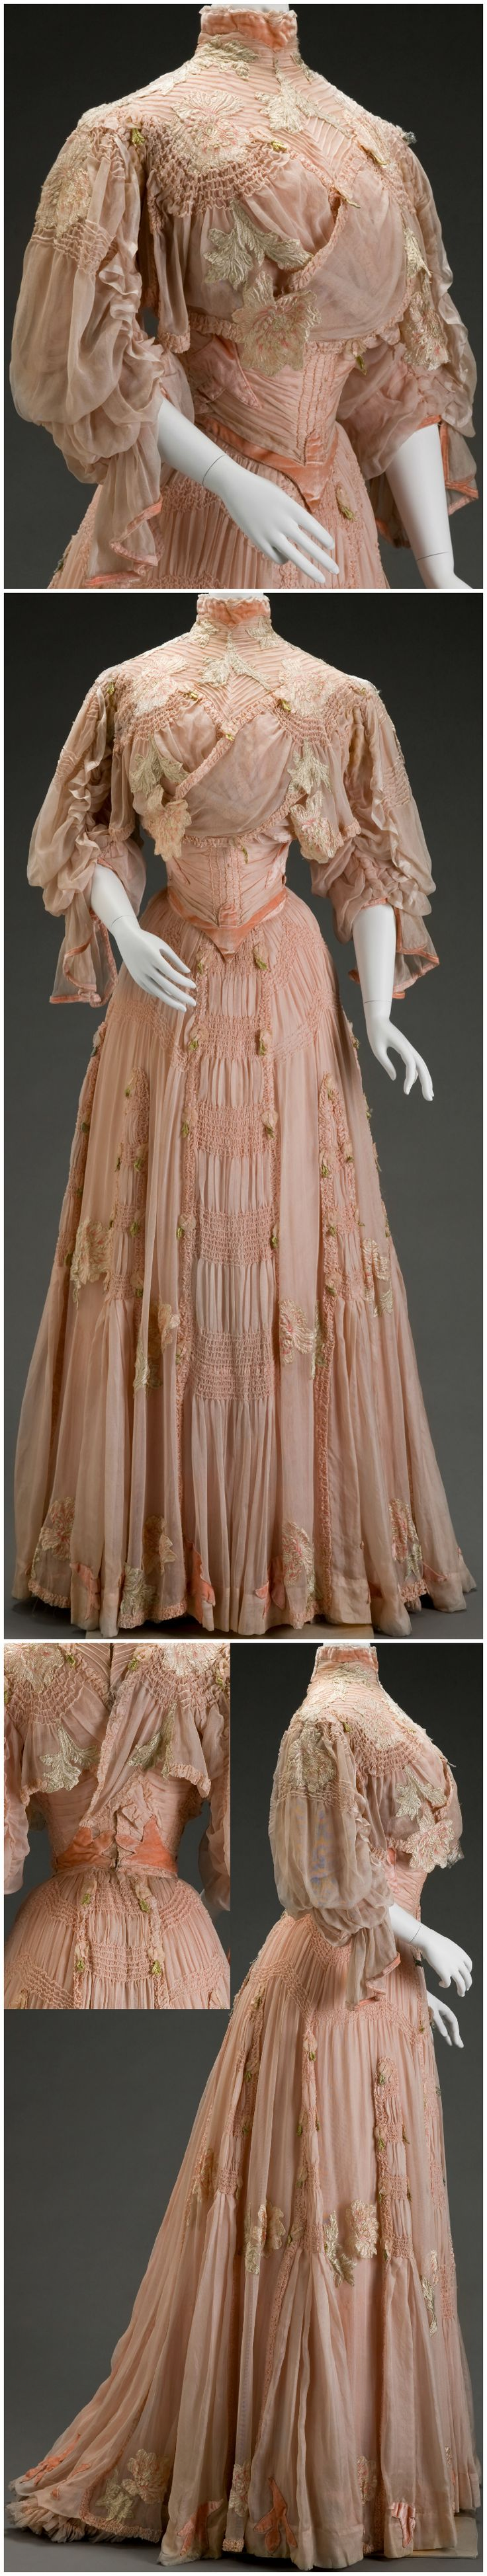 "Day dress, by Girolamo Giuseffi, G. Giuseffi L.T. Company, Design House (American), at the Indianapolis Museum of Art. IMA: ""The appliquéd and cutout stylized flowers—either peonies or plum blossoms—are drawn in an Art Nouveau style, which was prevalent from 1890 to 1914. The dramatic sleeve silhouette along with the great amount of ruching and hand pin tucking throughout the bodice and skirt make this a very expensive garment, perhaps part of a trousseau."""